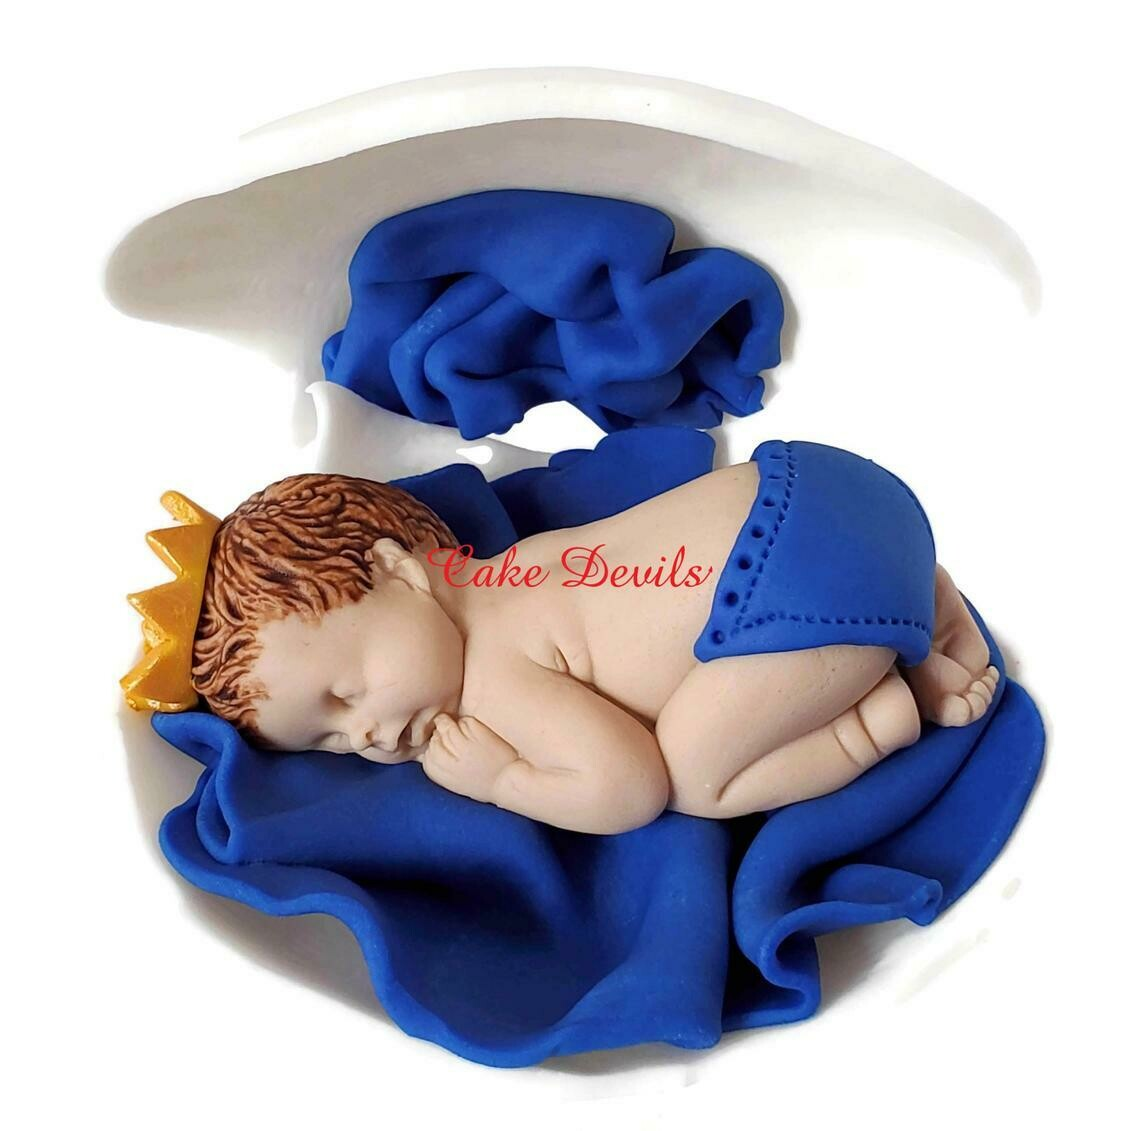 Fondant Prince or Princess Baby Shower Cake Topper in a Clam Shell Cake Decoration